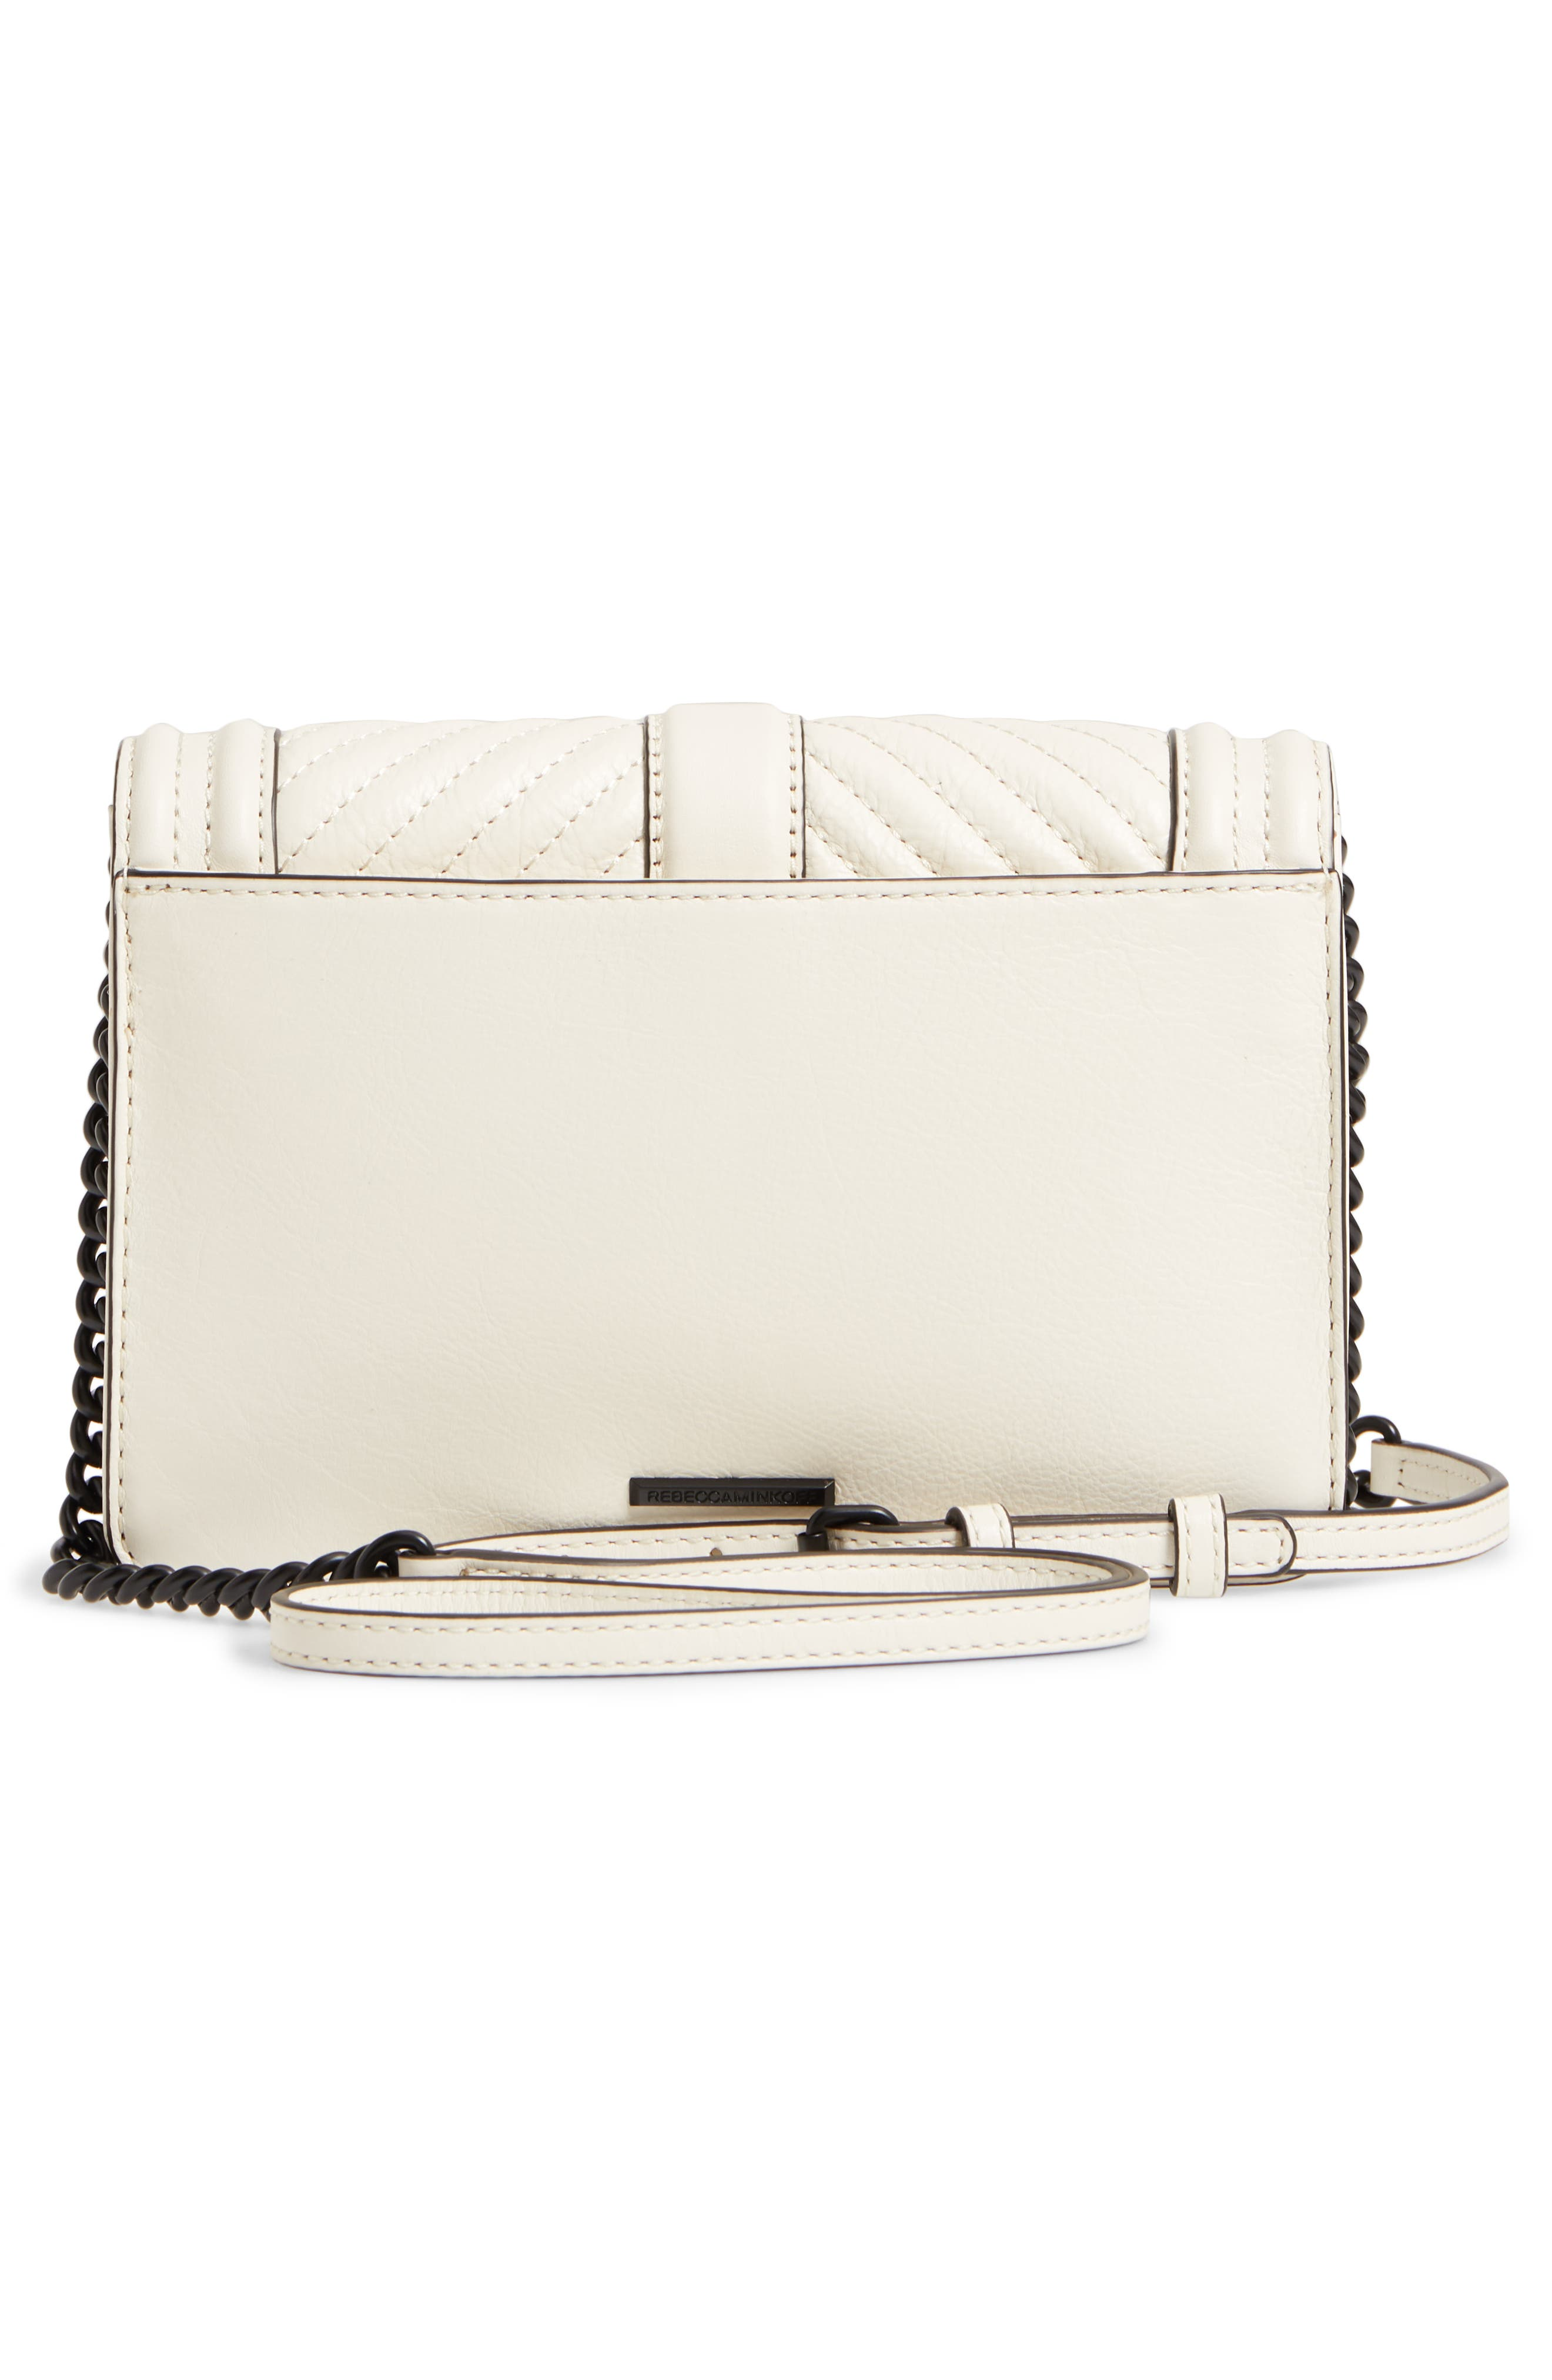 Small Love Leather Crossbody Bag,                             Alternate thumbnail 3, color,                             Antique White